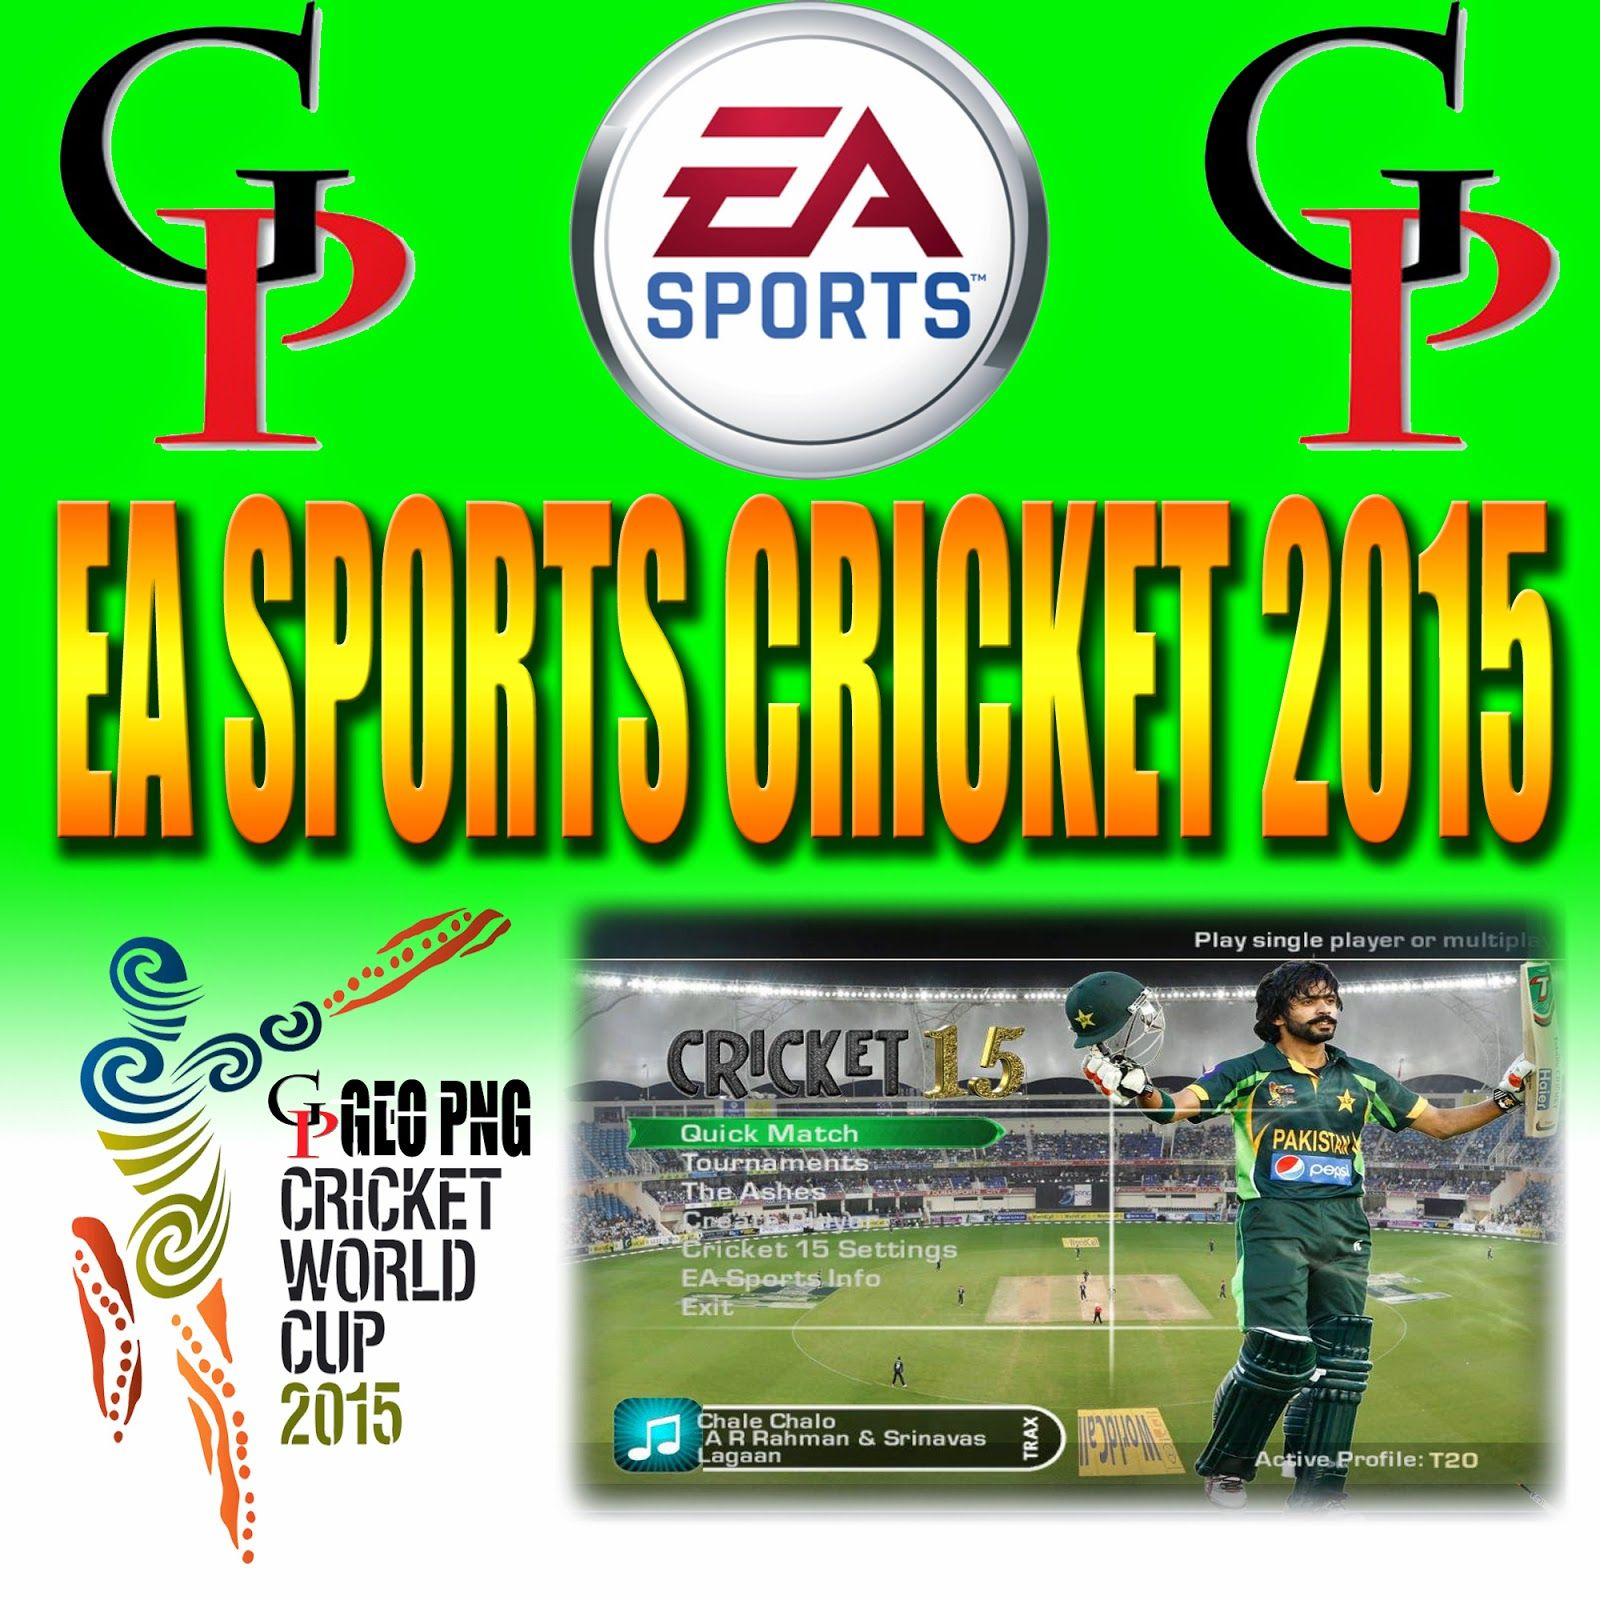 EA SPORTS CRICKET 2016 PC GAME FULL VERSION FREE DOWNLOAD